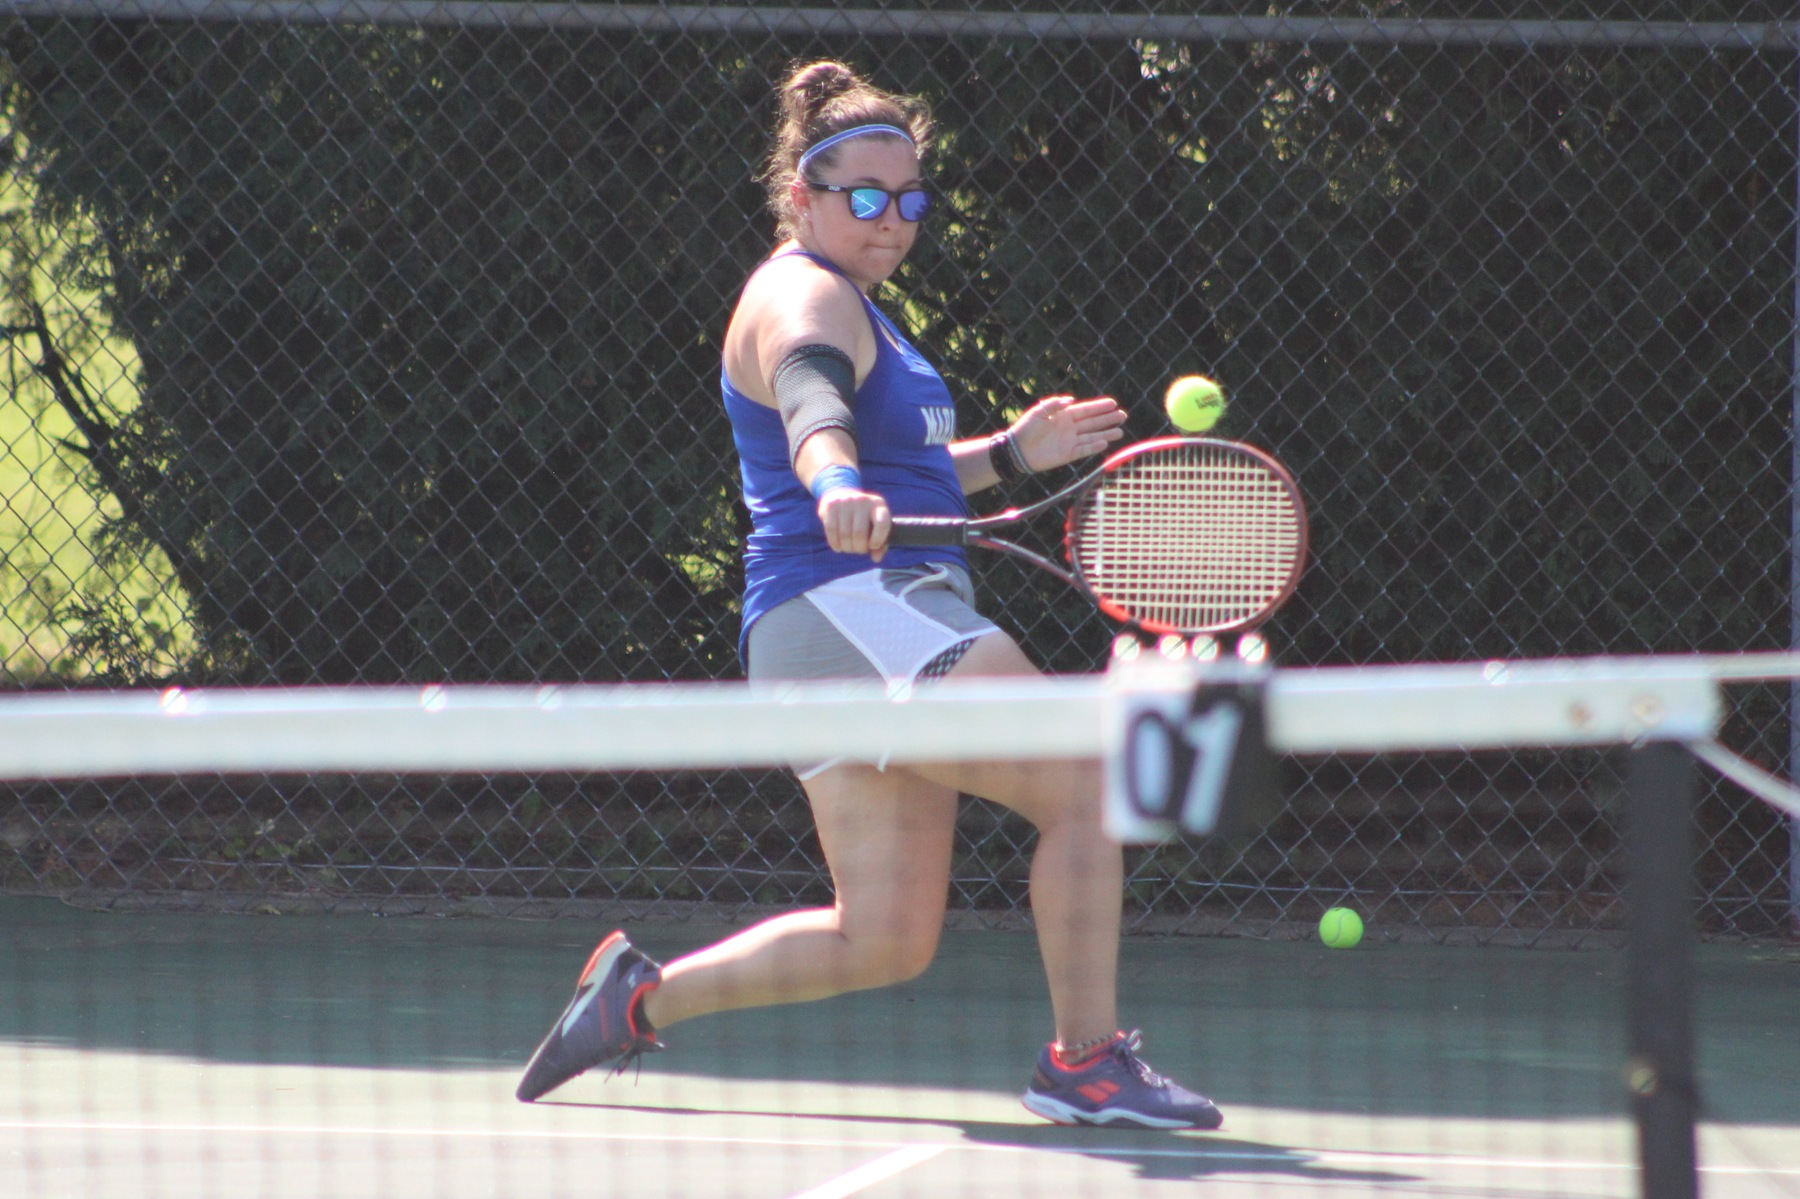 Kristin Houle uses her backhand.